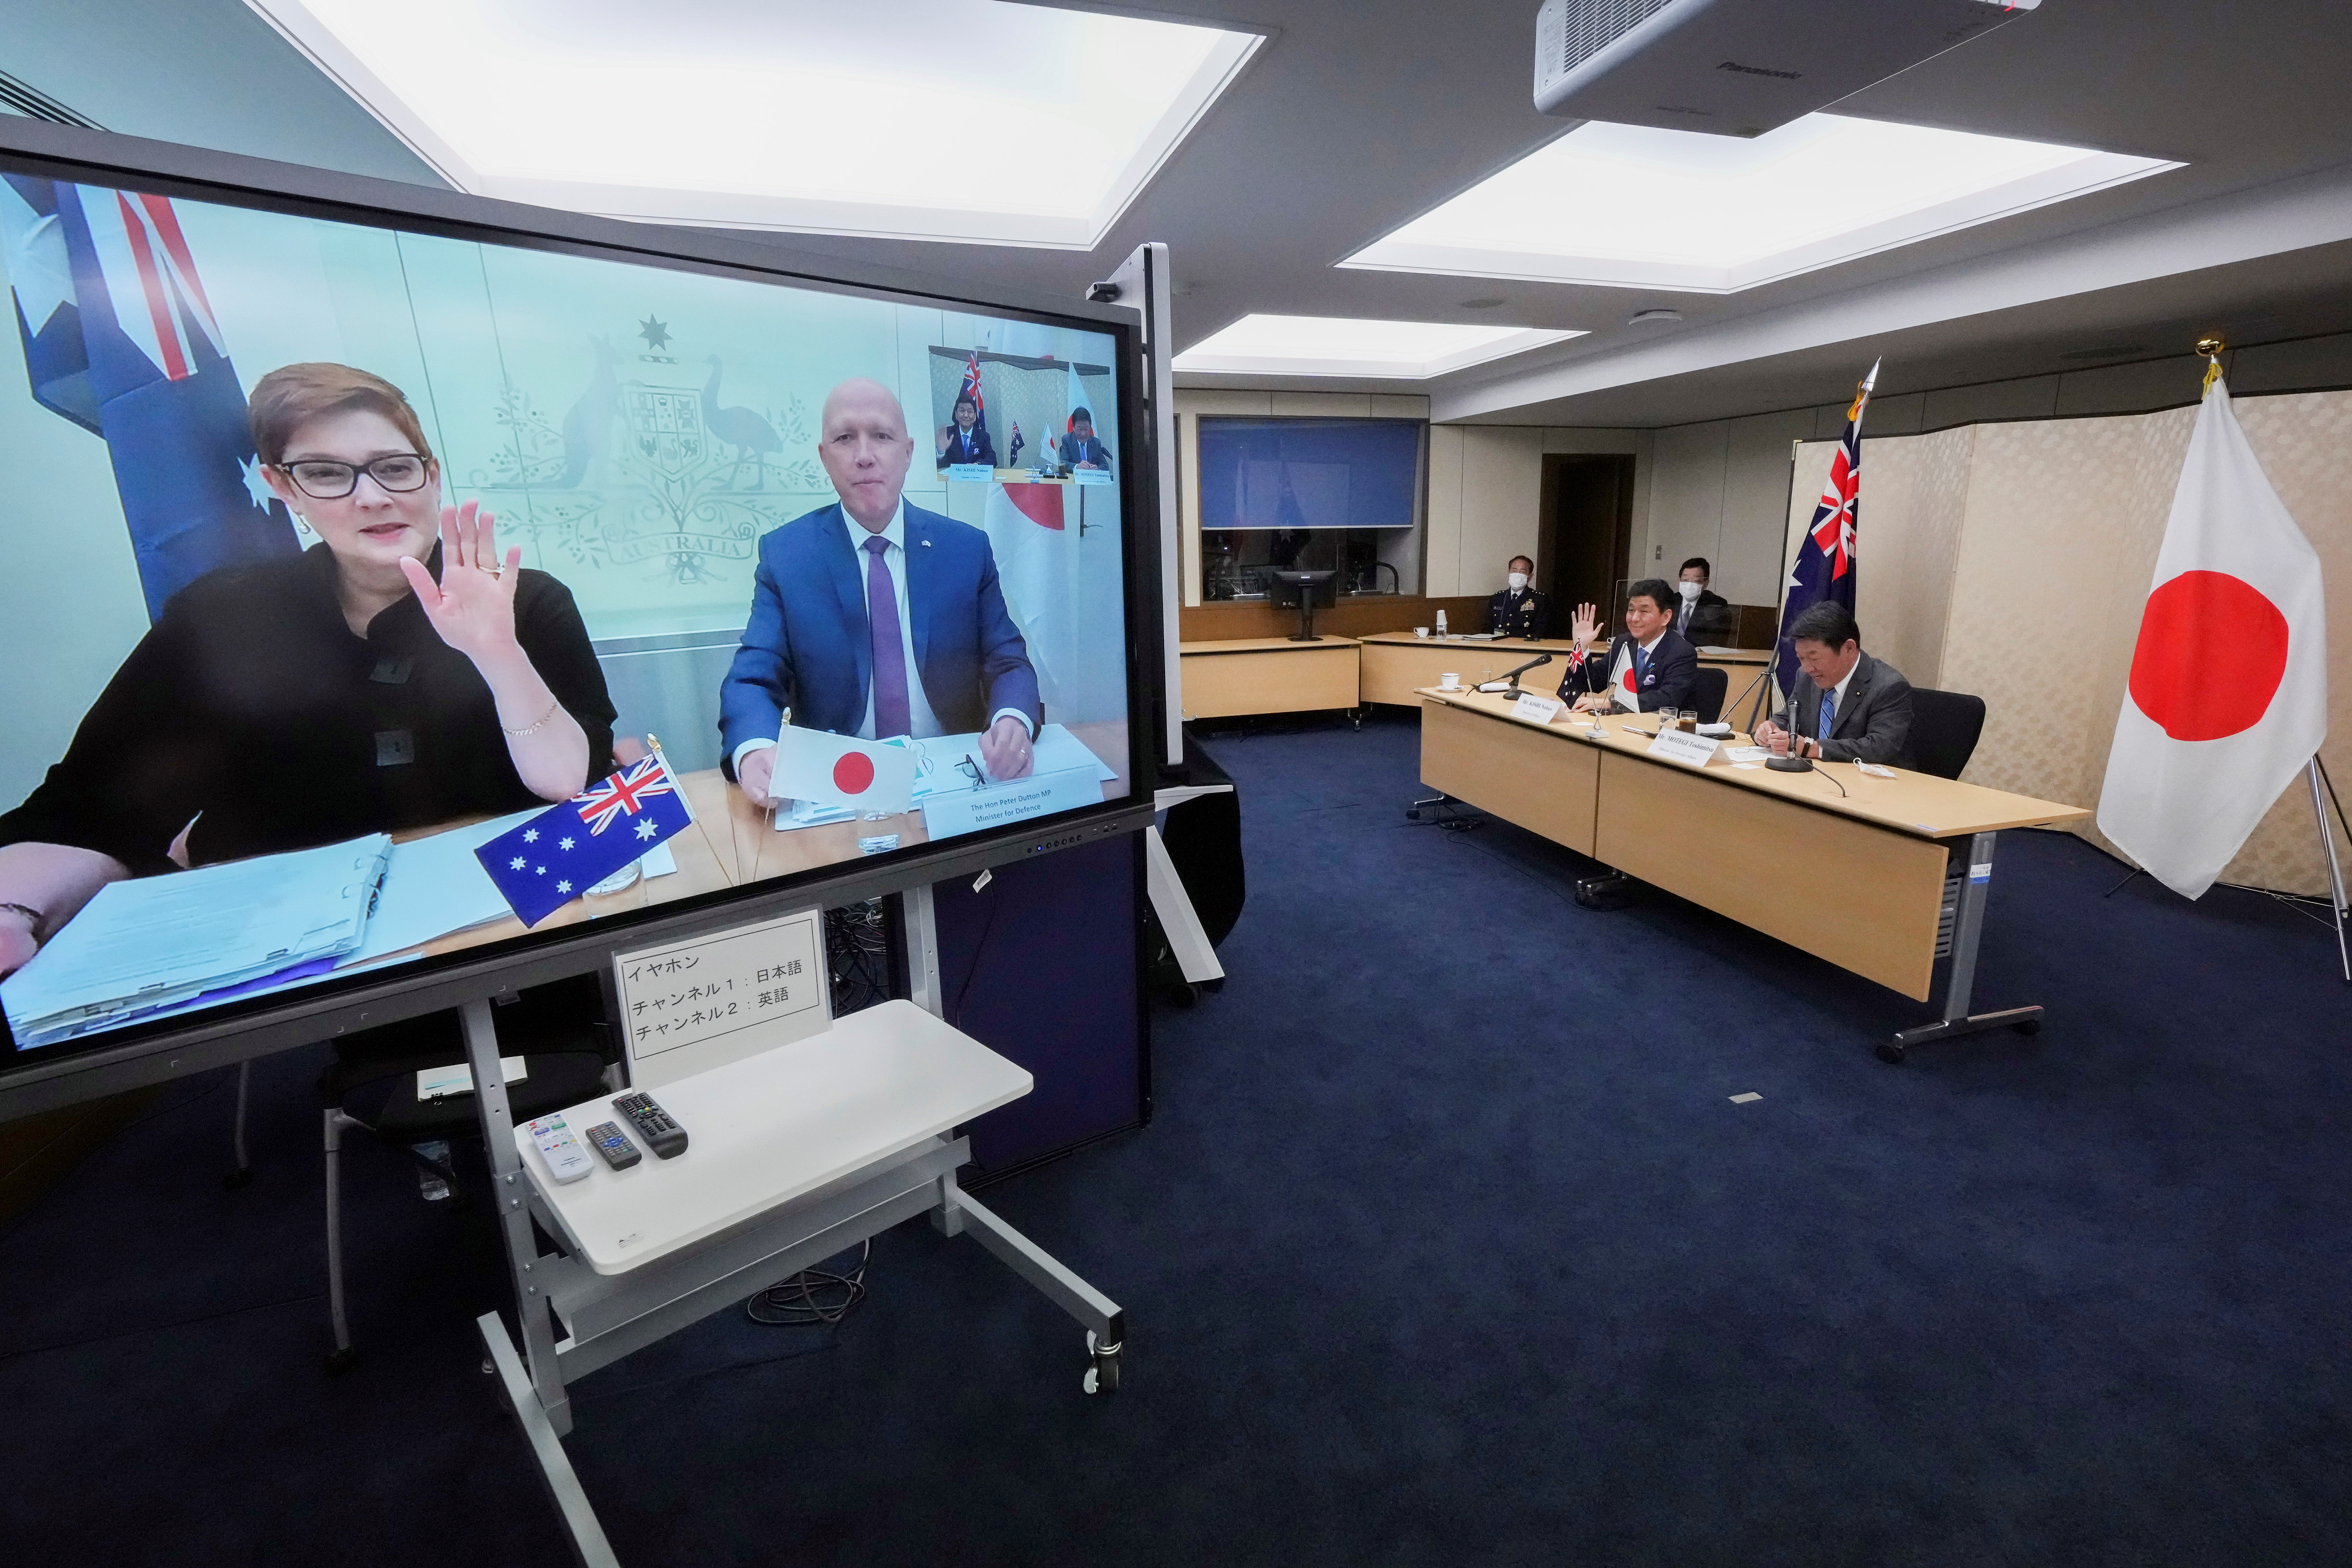 Japanese Foreign Minister Toshimitsu Motegi (R) and Defense Minister Nobuo Kishi (2nd R), attend a video conference with Australian Foreign Minister and Minister for Women Marise Payne (L) on screen, and Australian Defense Minister Peter Dutton at Foreign Ministry during their